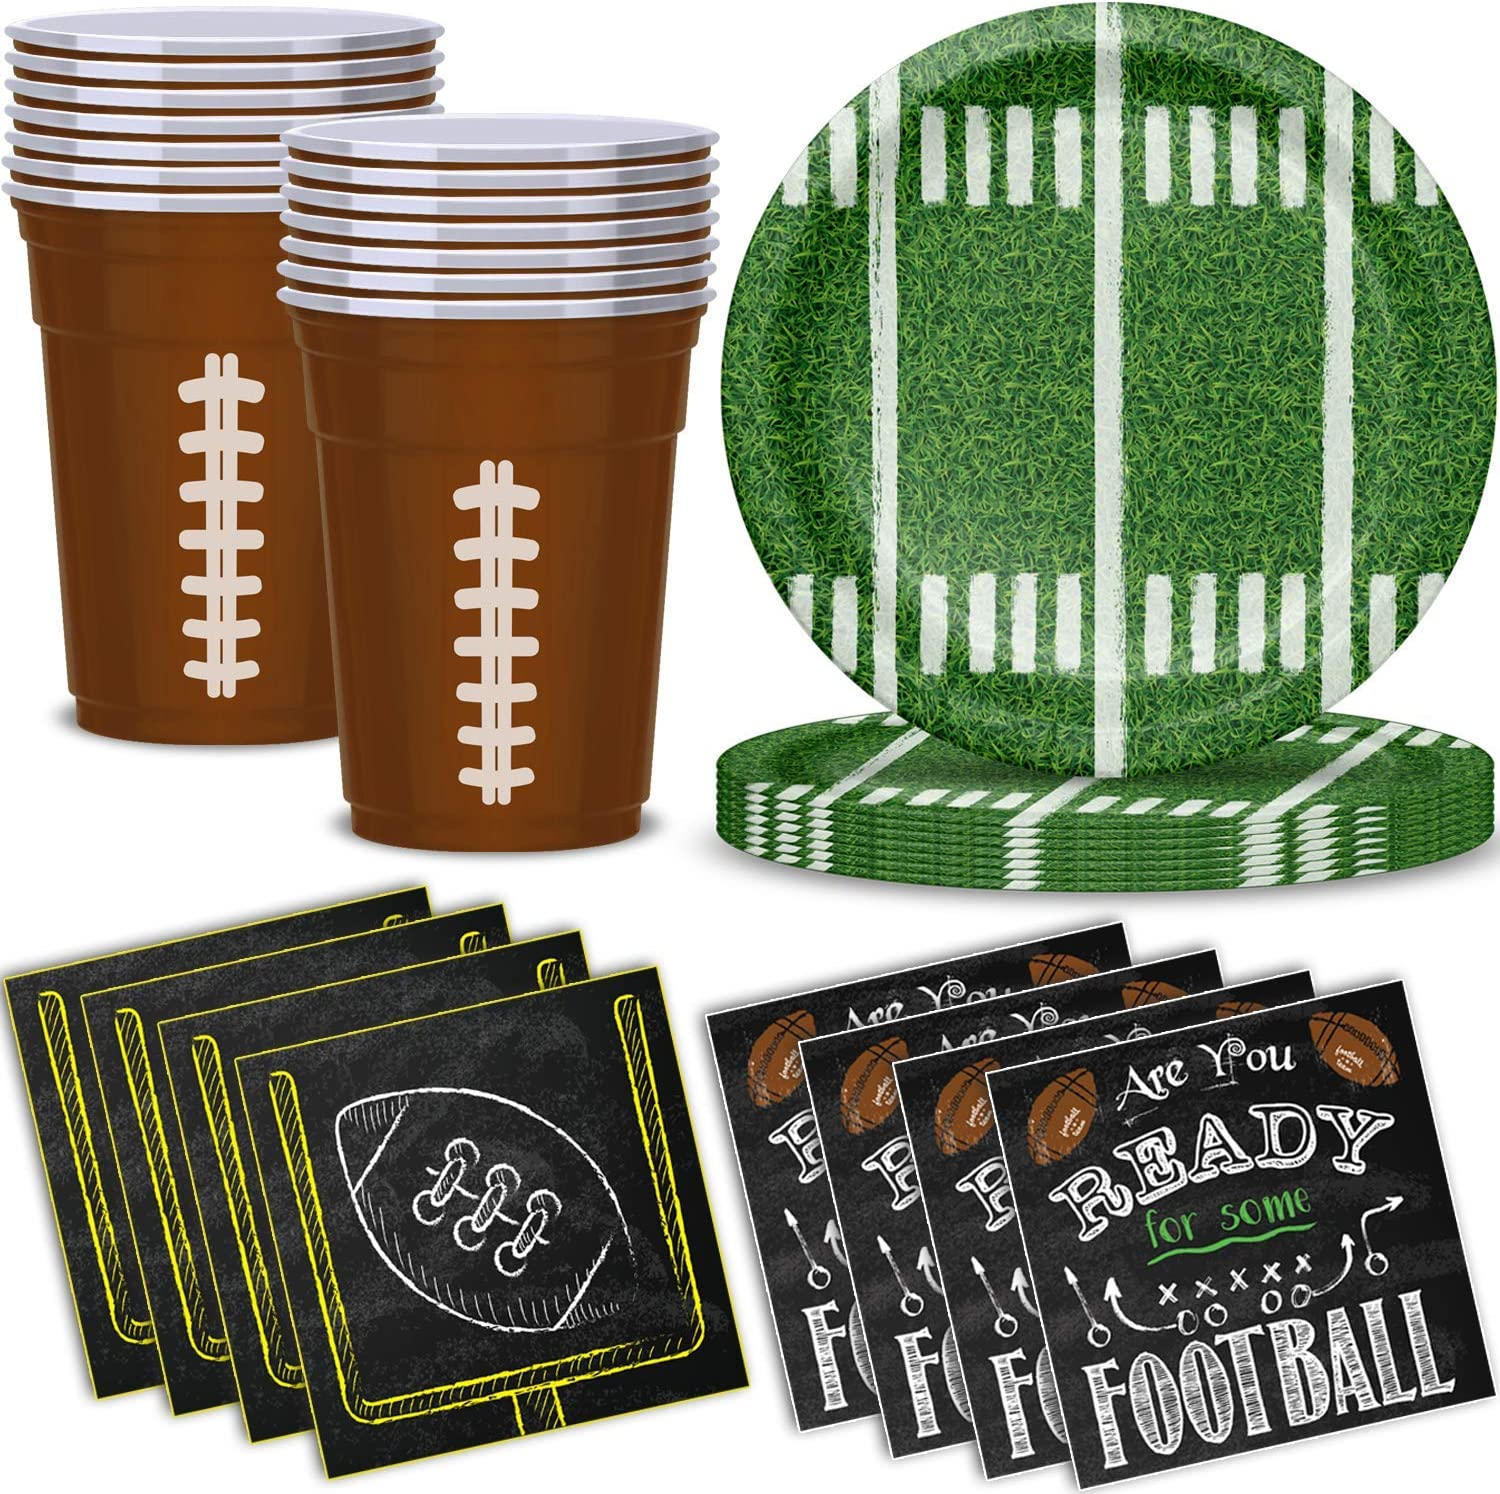 """Football Party Supplies for 32 - Disposable Paper Plates, Football Inspired Plastic Cups, """"Are You Ready for Some Football"""" Beverage Napkins - Great for Sport Events, Superbowl Themed Parties and Decorations"""